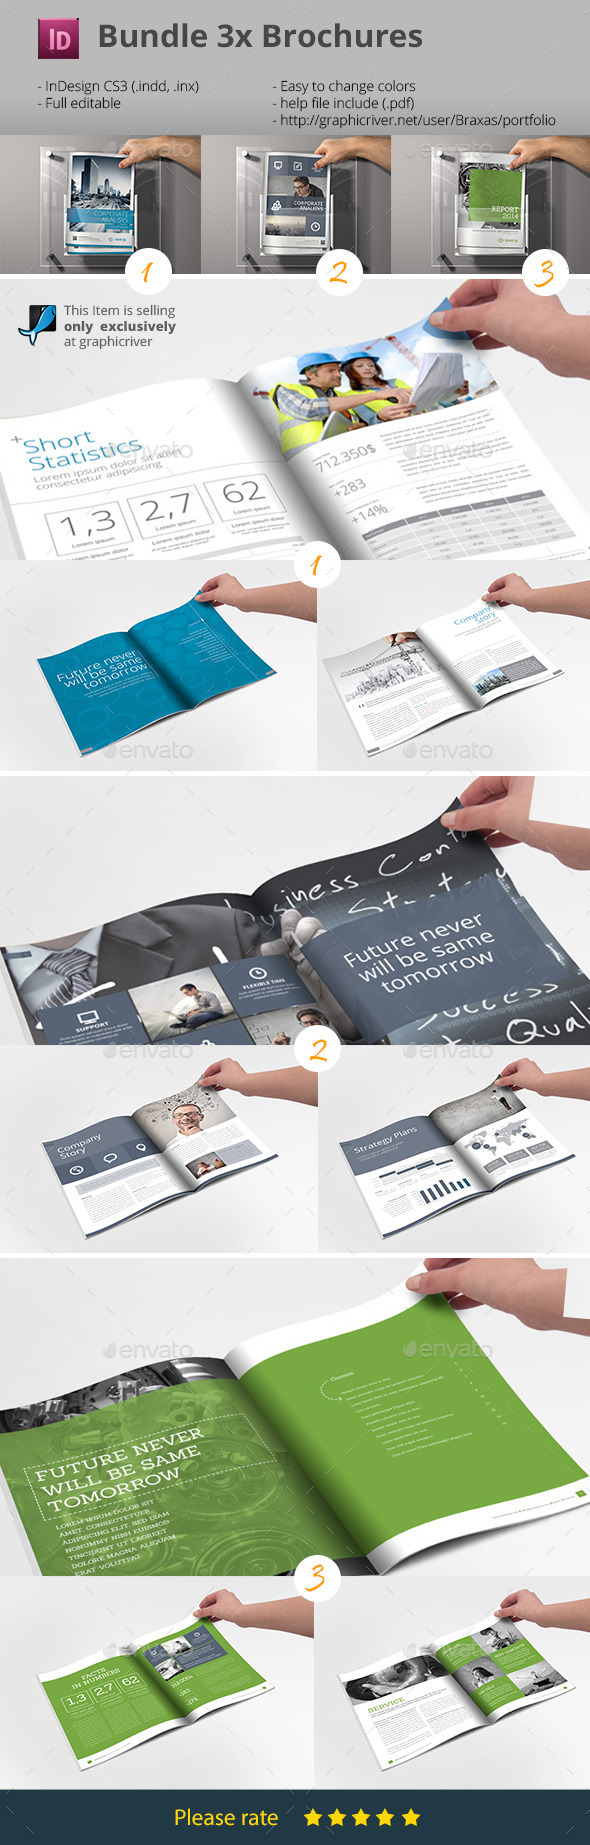 Business Brochure Bundle - InDesign Templates - Informational Brochures